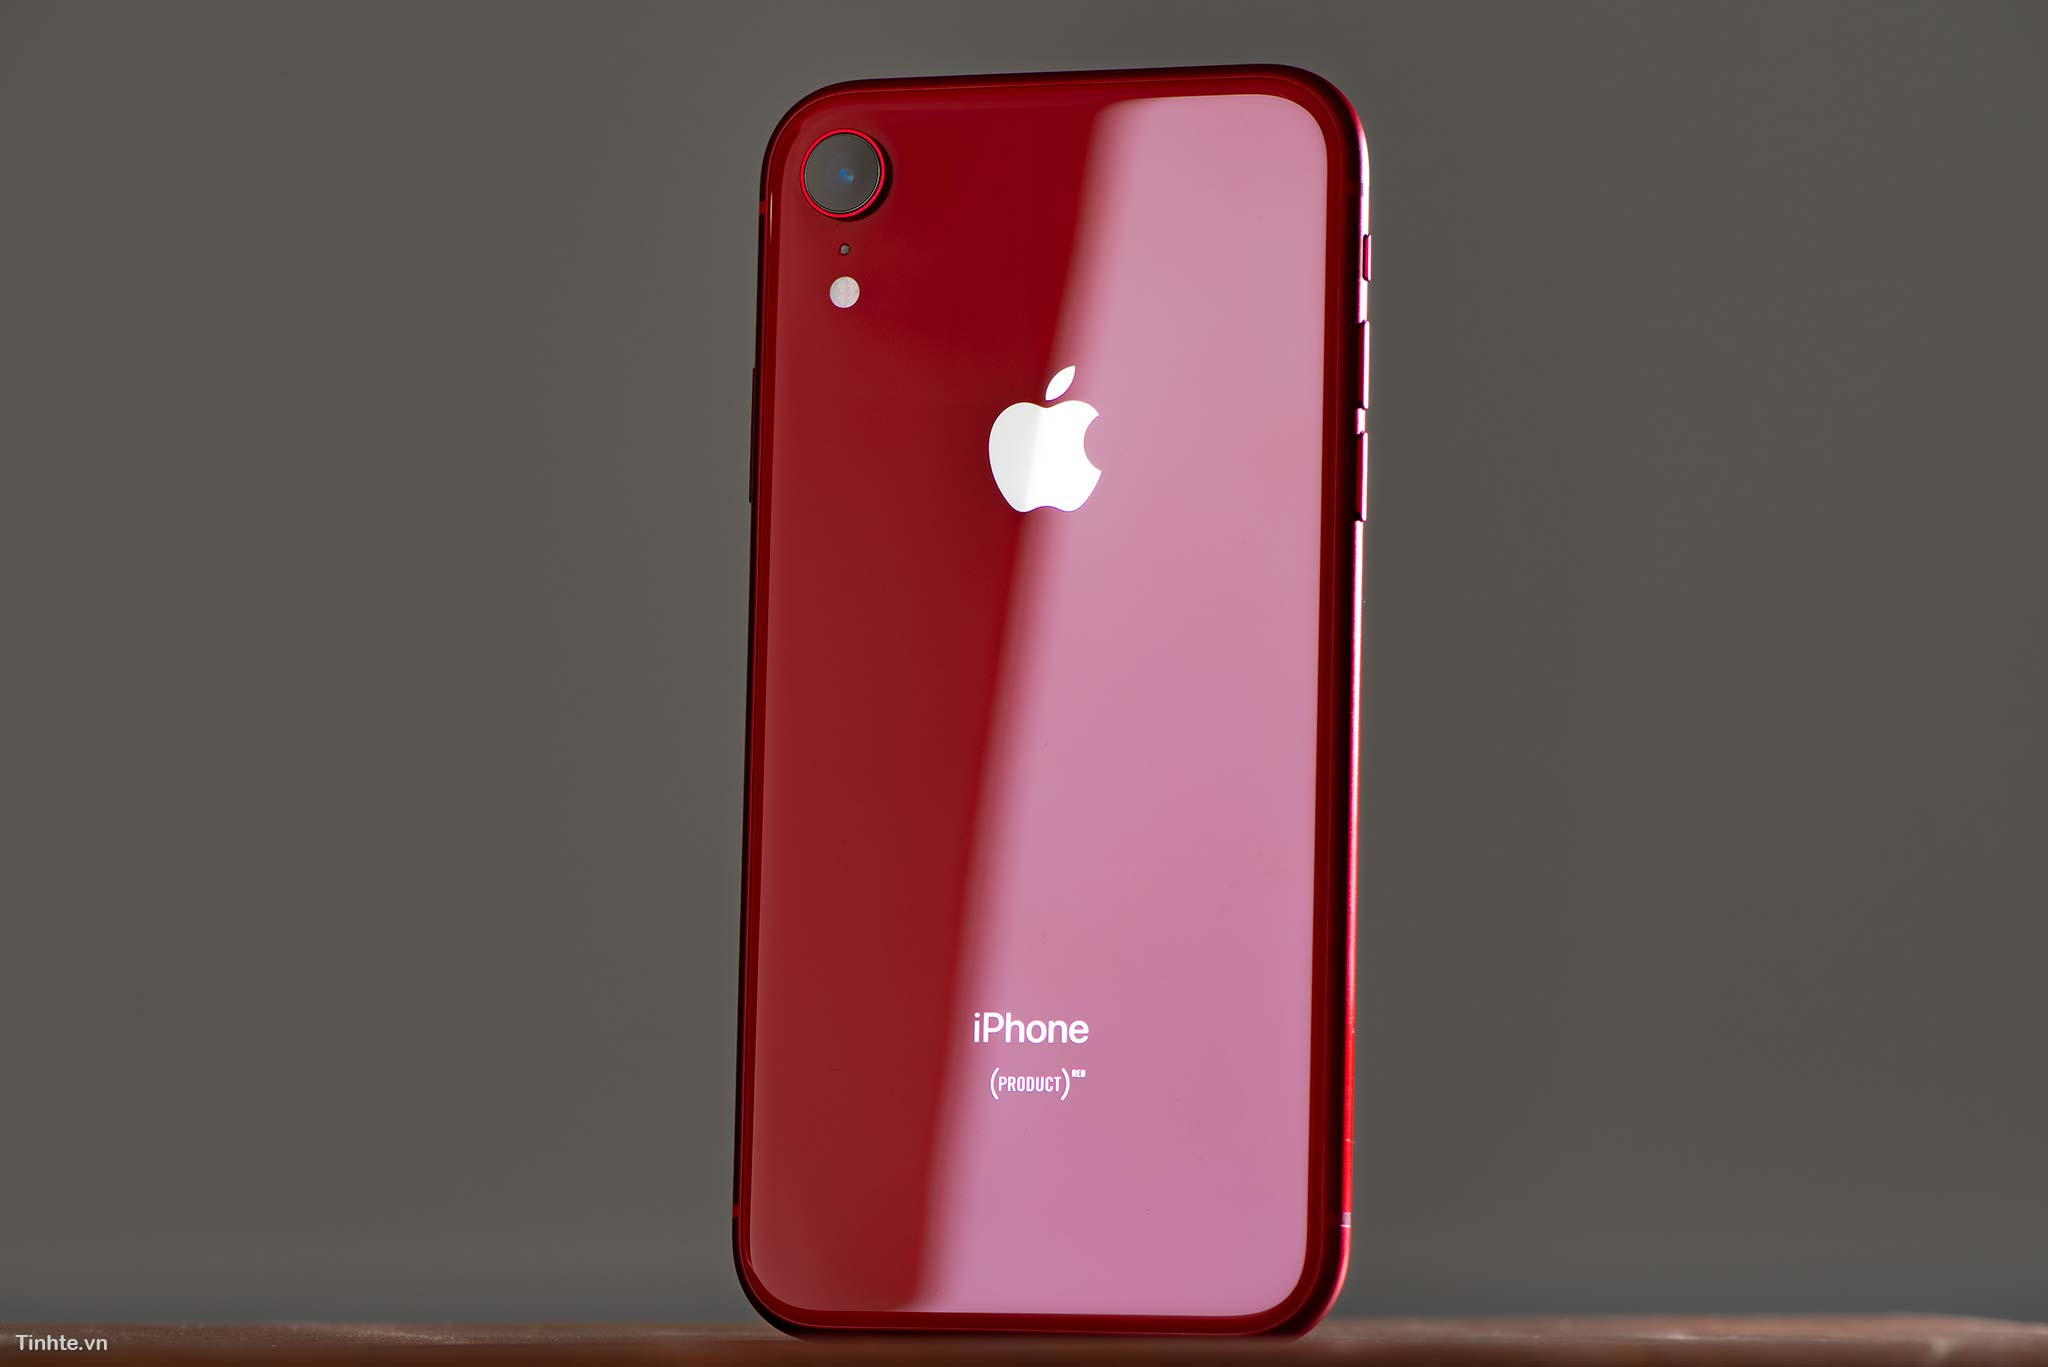 tinhte_tren_tay_iphone_xr_product_red_2.jpg